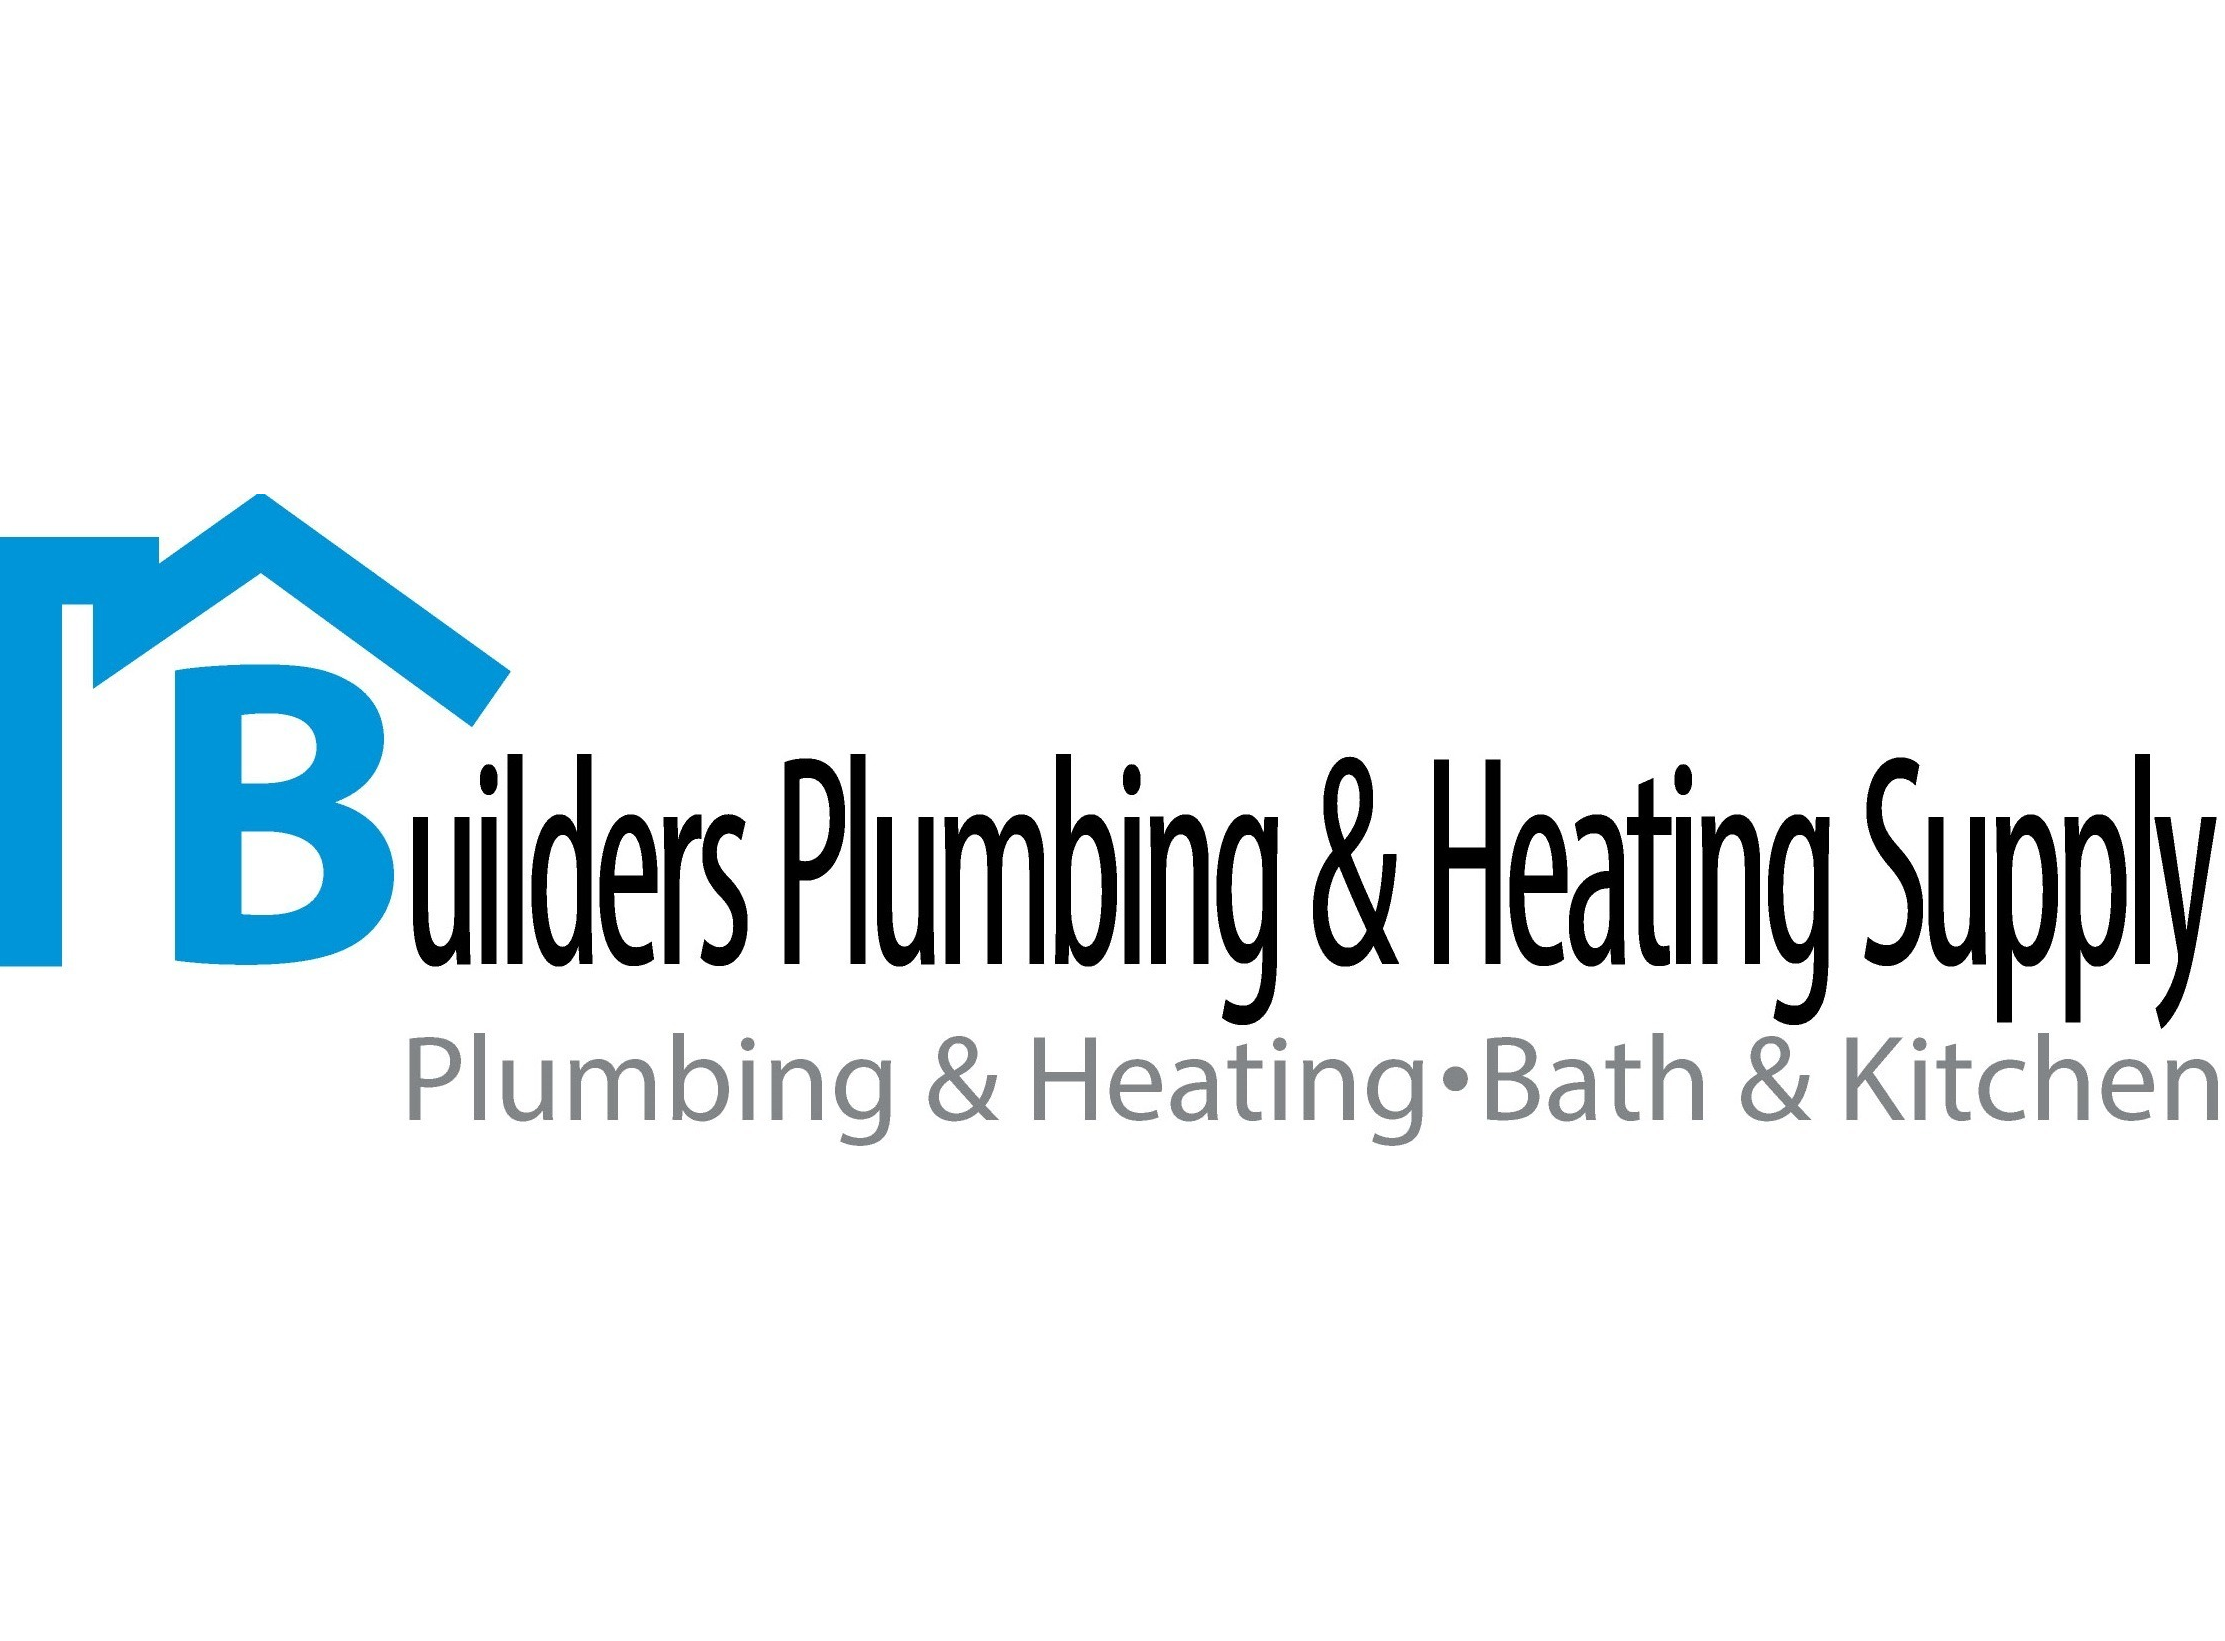 Builders Plumbing & Heating Supply